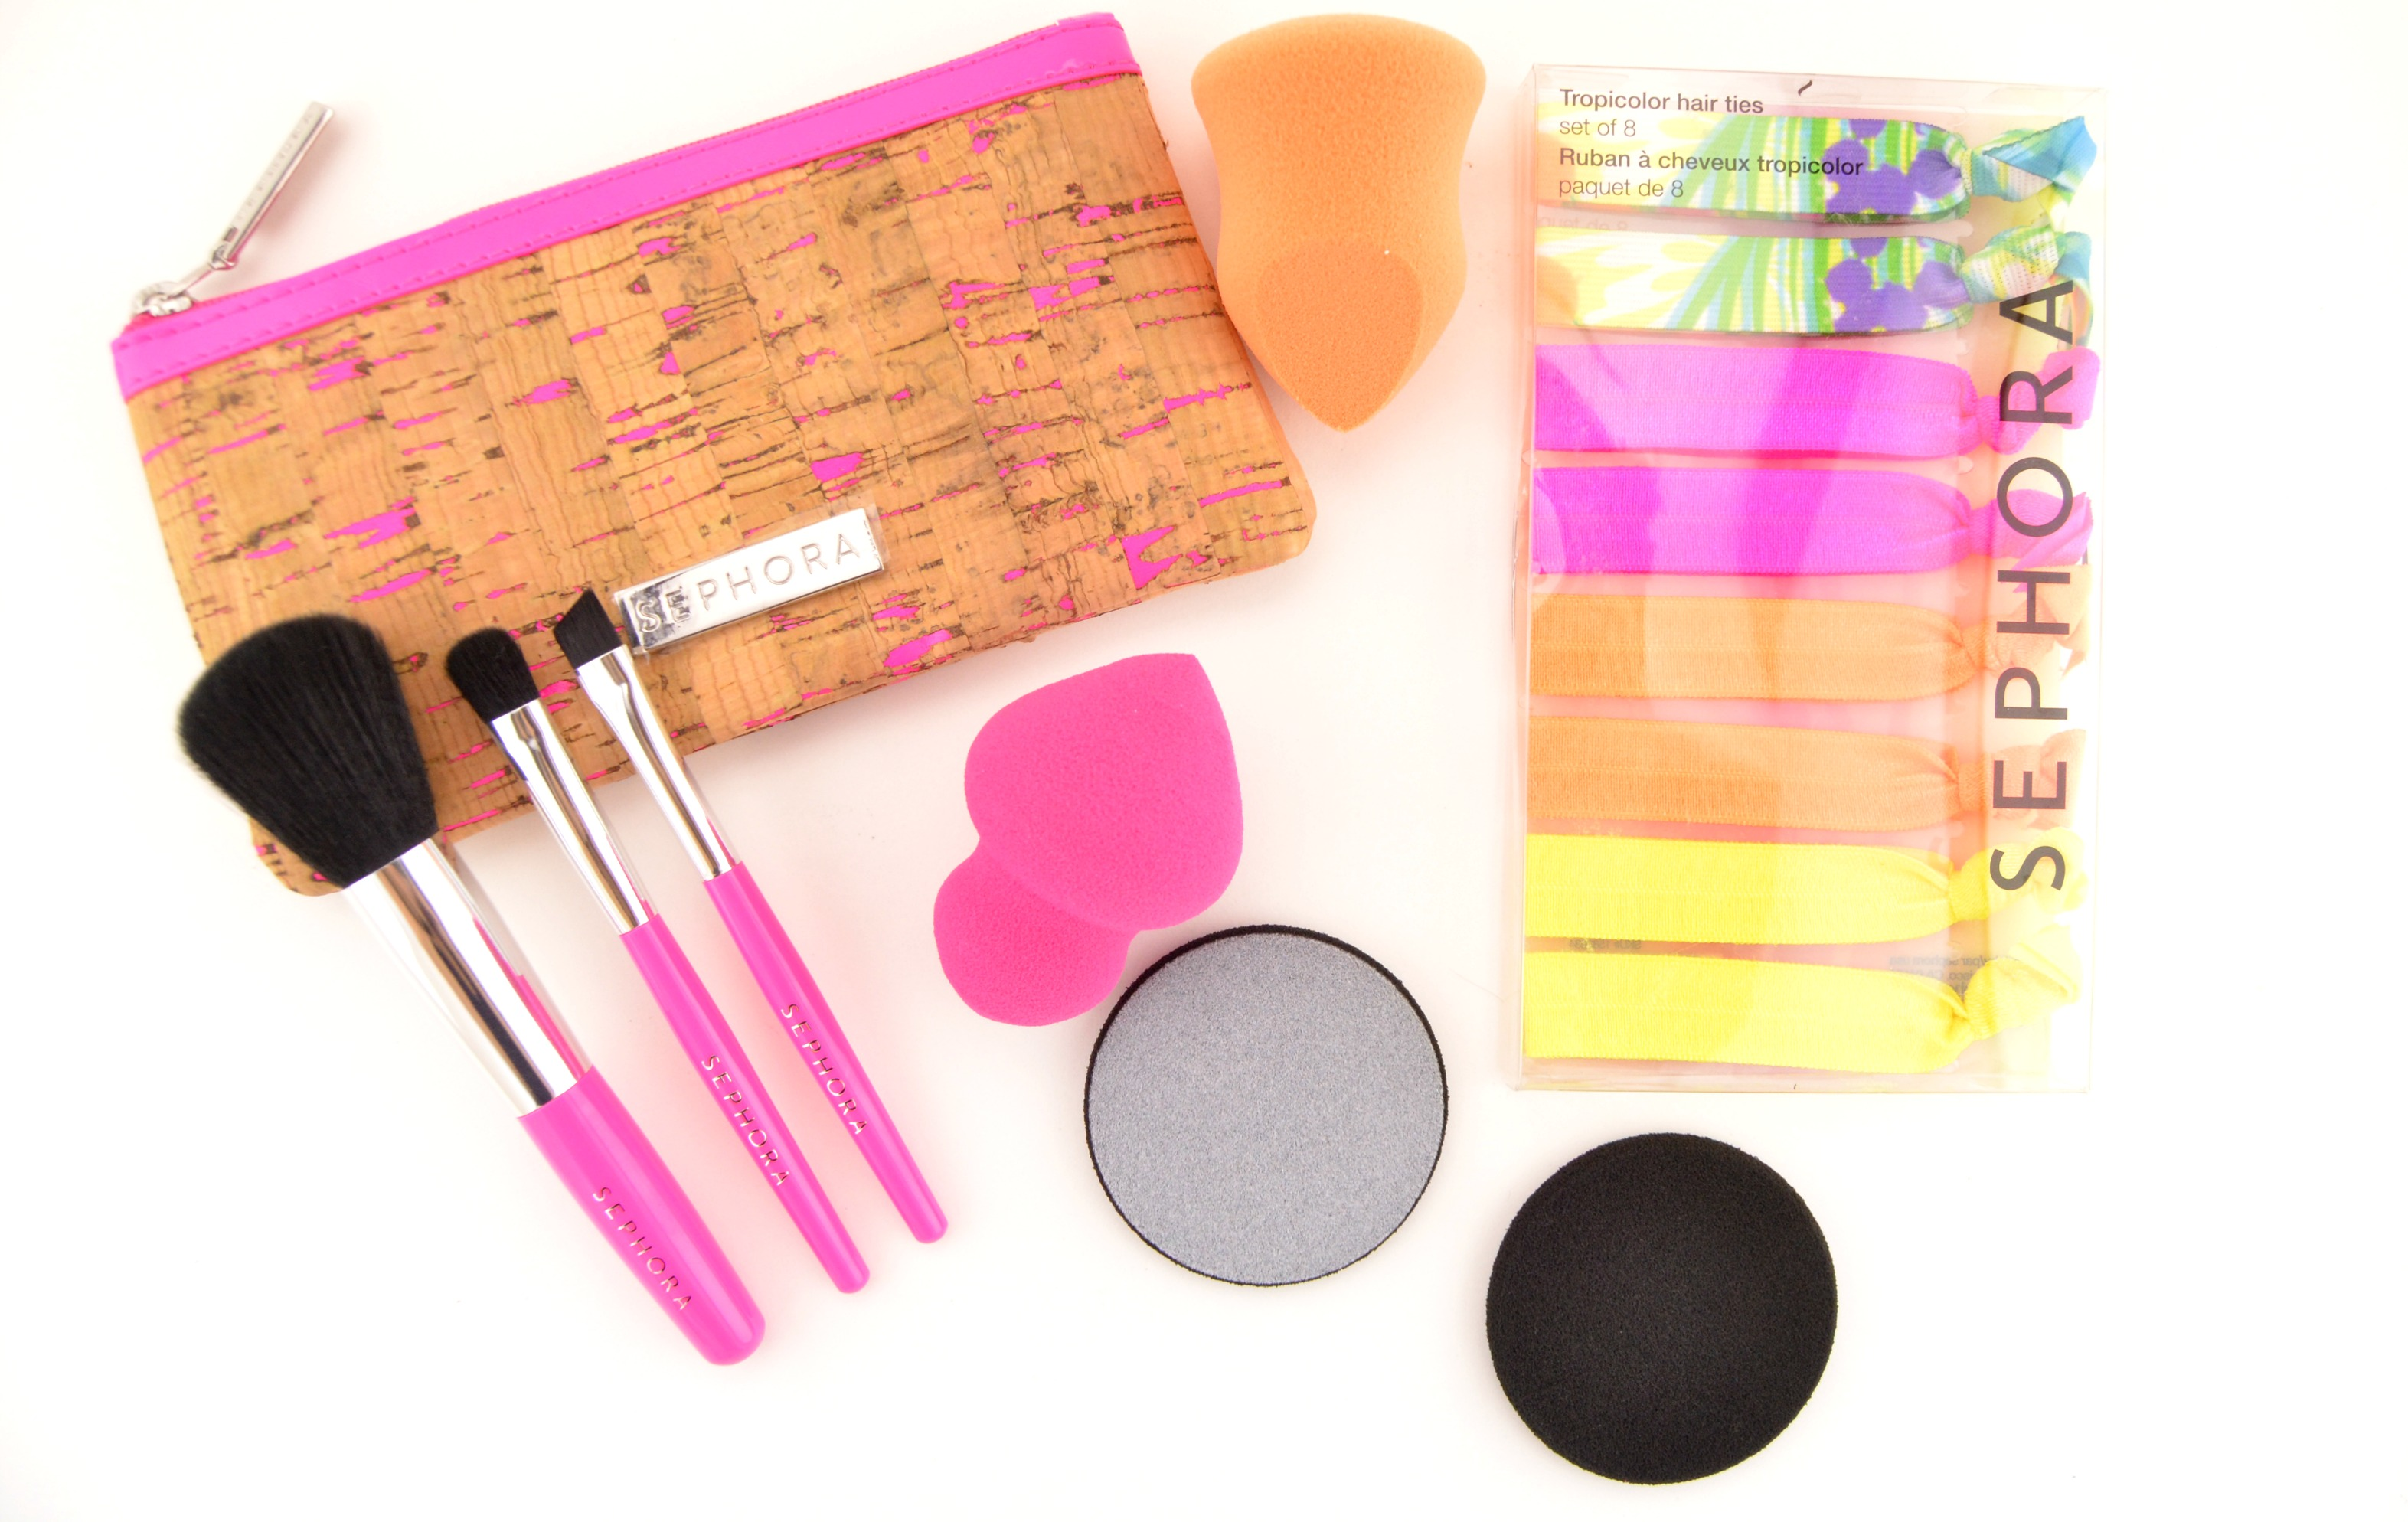 Sephora Collection Makeup Brushes Tools And Accessories For Summer 2014 Canadian Fashionista